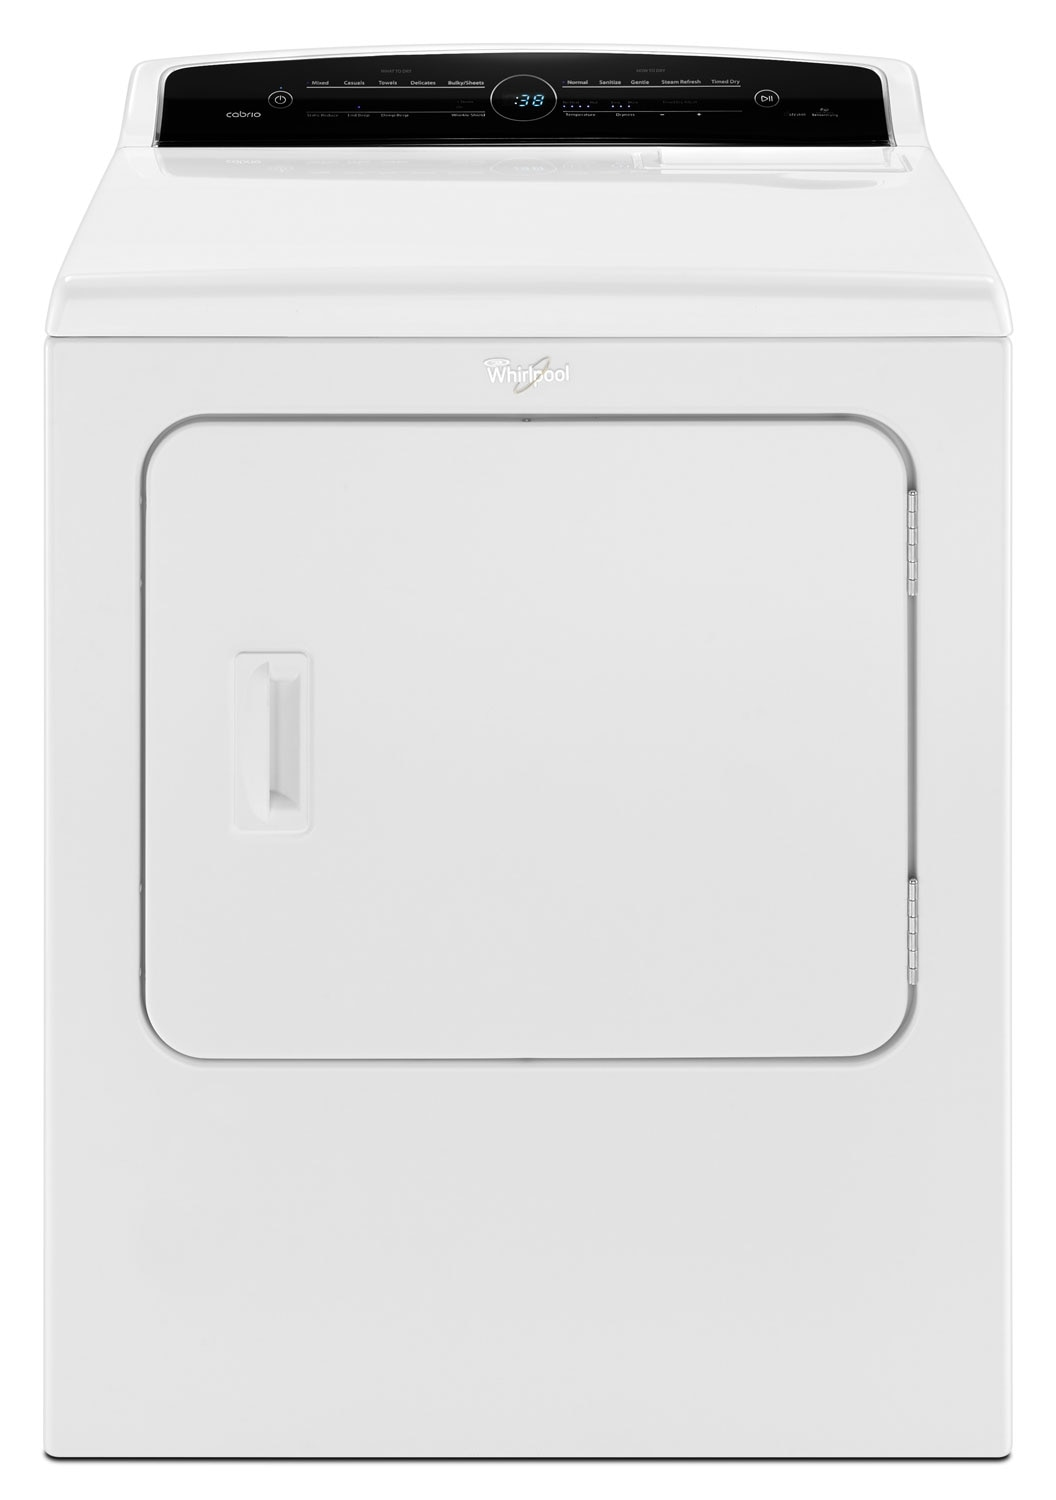 Whirlpool Dryer (7.0 Cu. Ft.) YWED7300DW